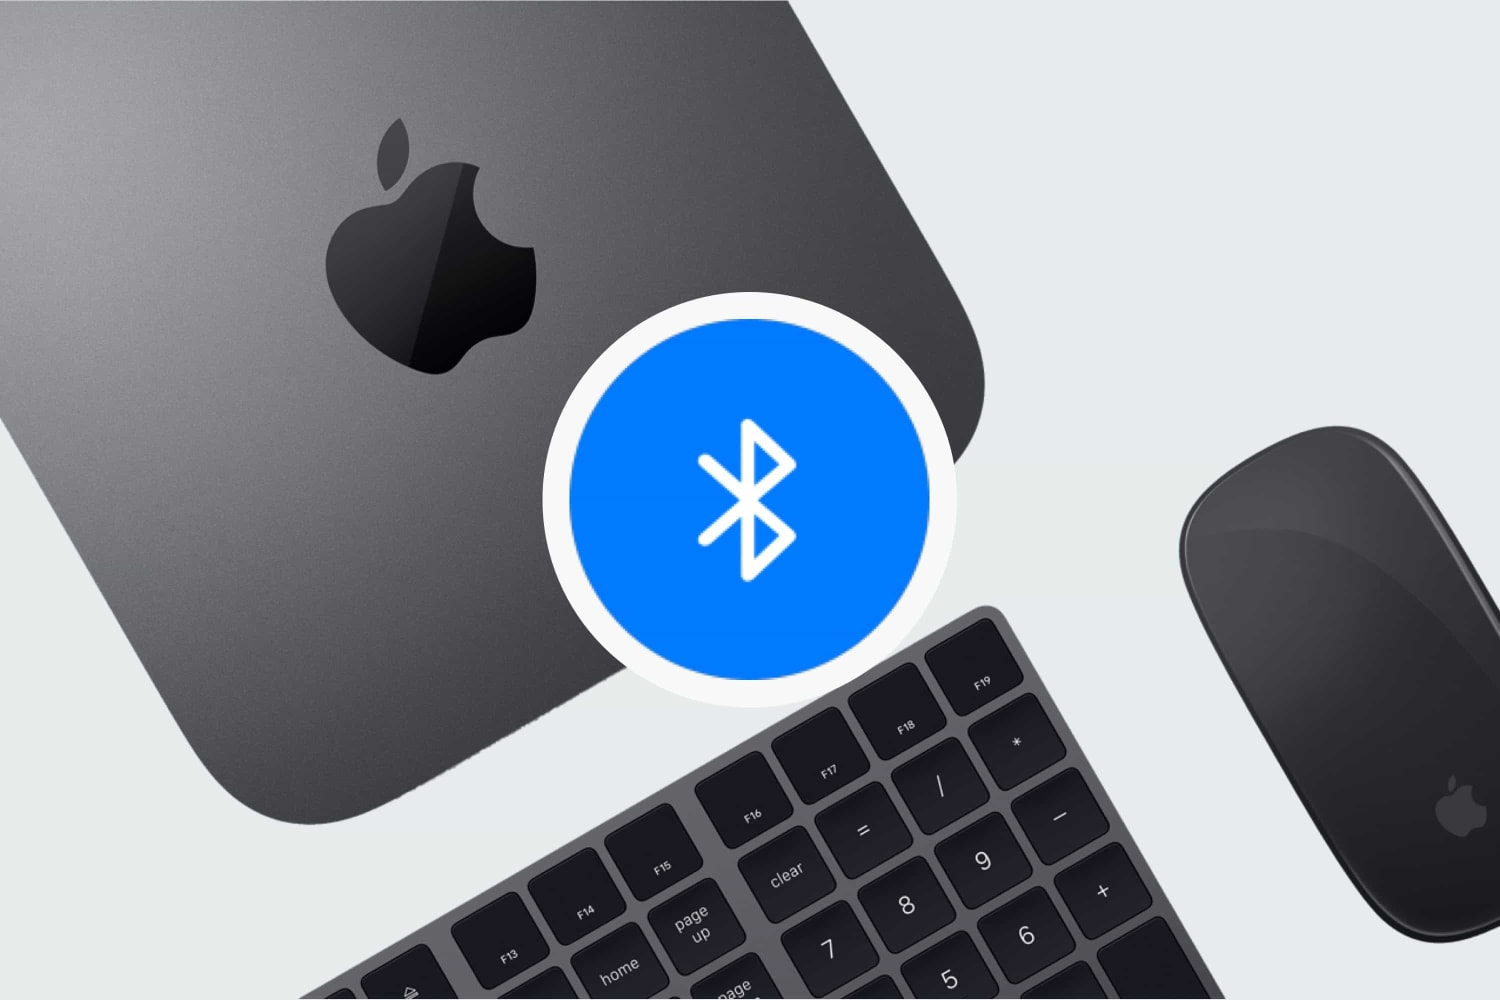 bluetooth-connectivity-problems-reportedly-plaguing-m1-mac-mini-20201125-1